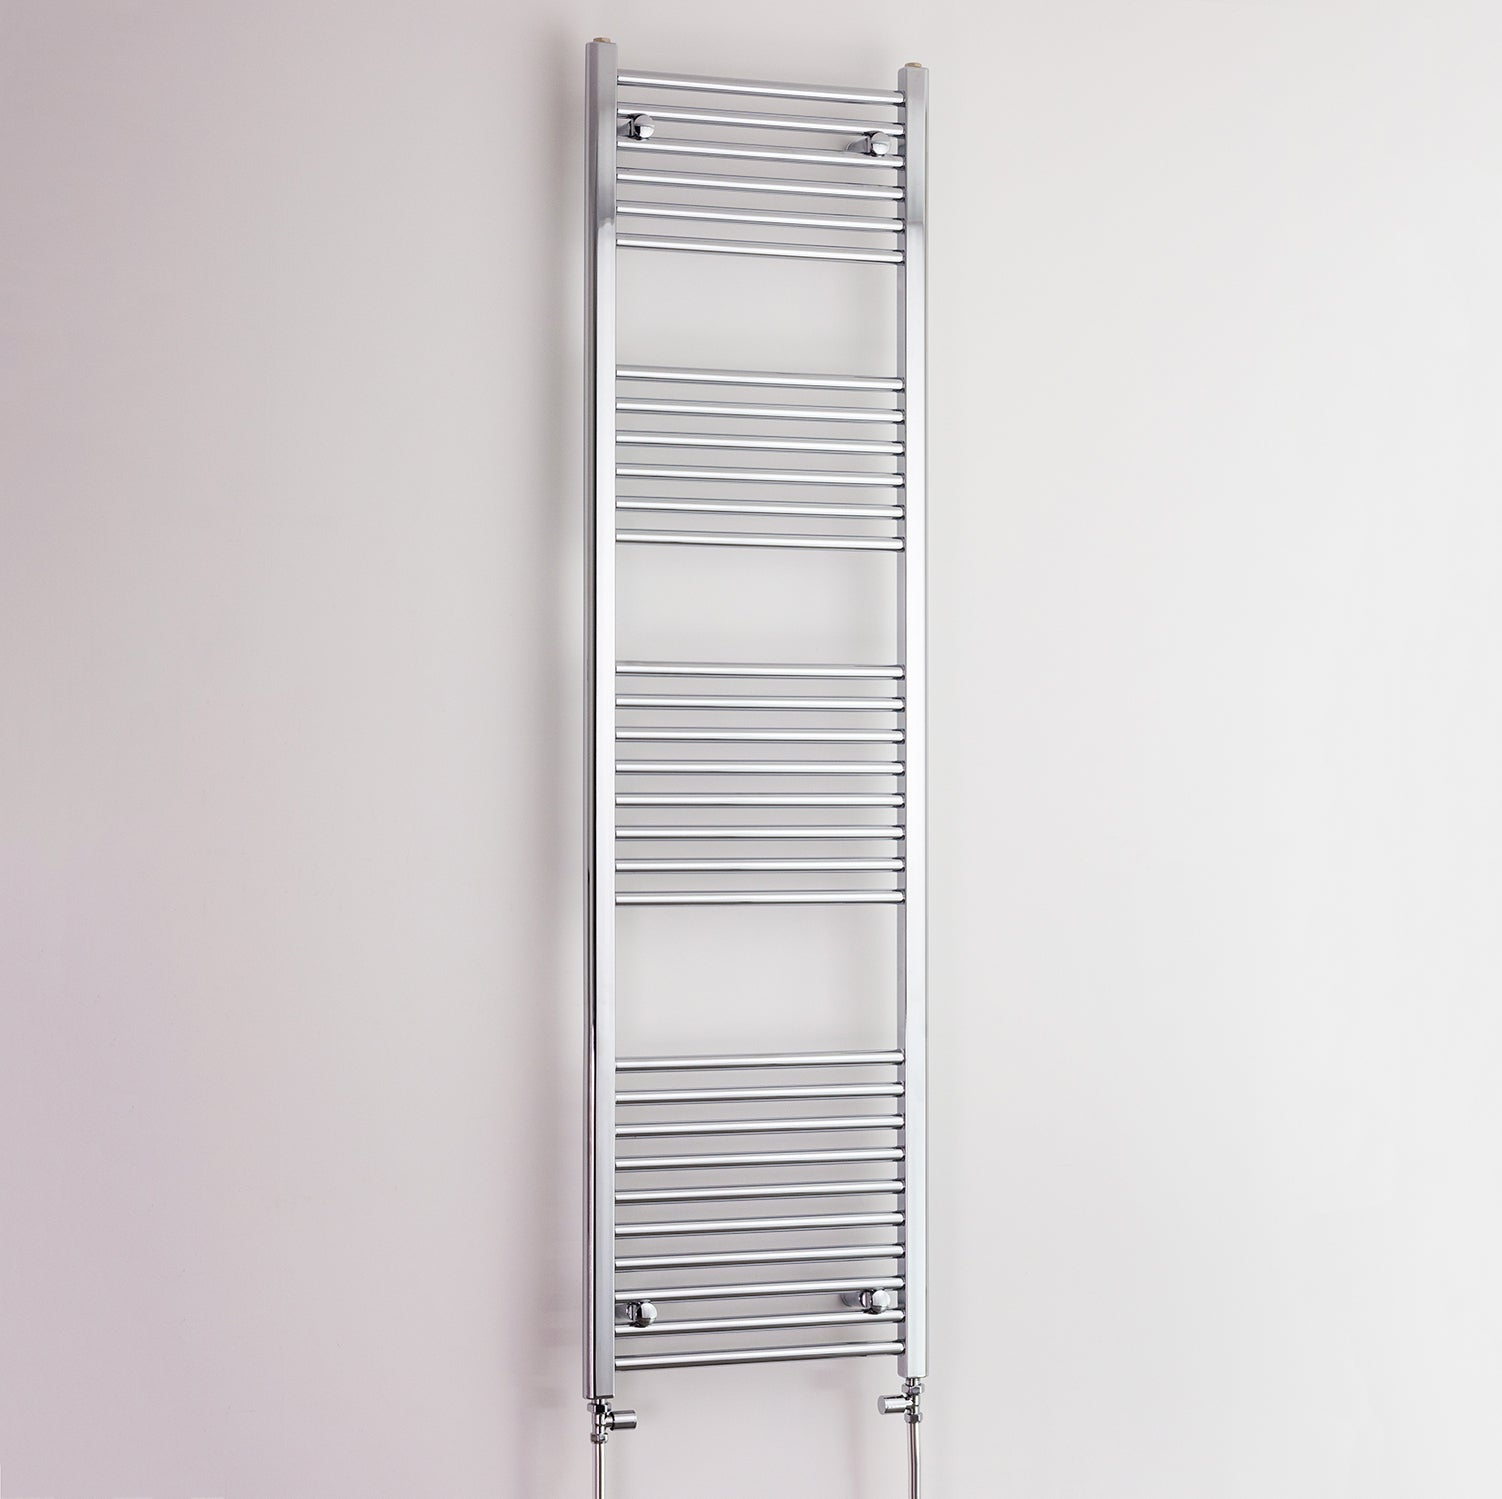 500mm Wide 1800mm High Curved Chrome Heated Towel Rail Radiator HTR,With Straight Valve